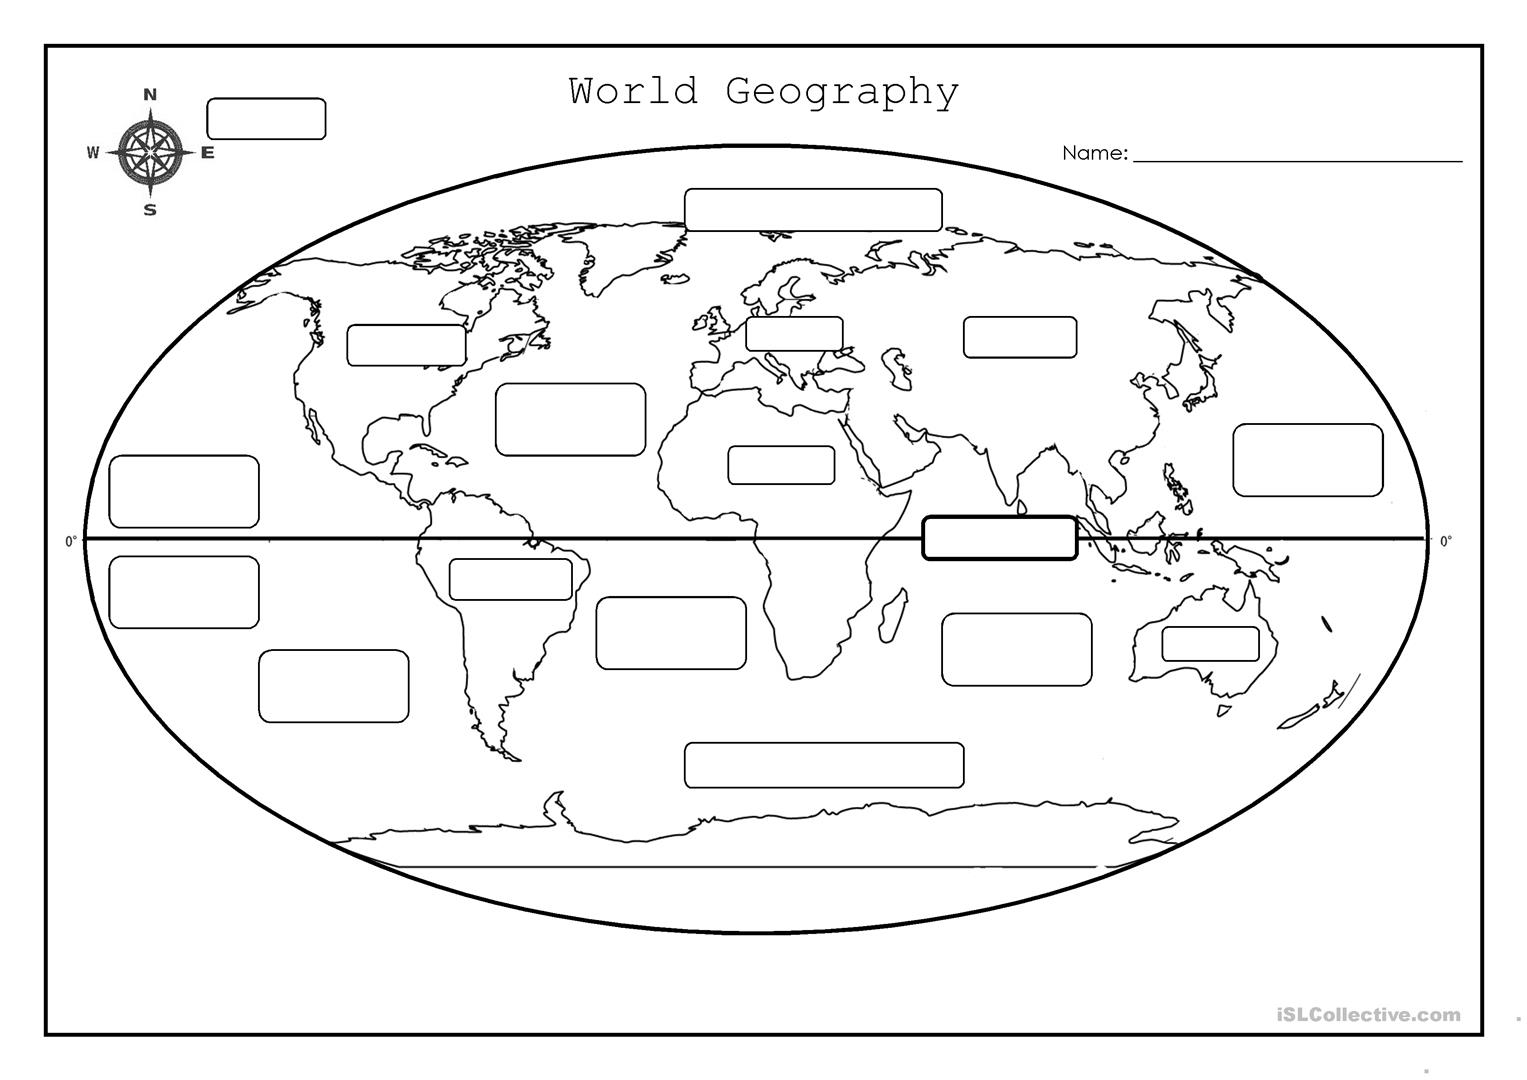 World Geography Worksheet